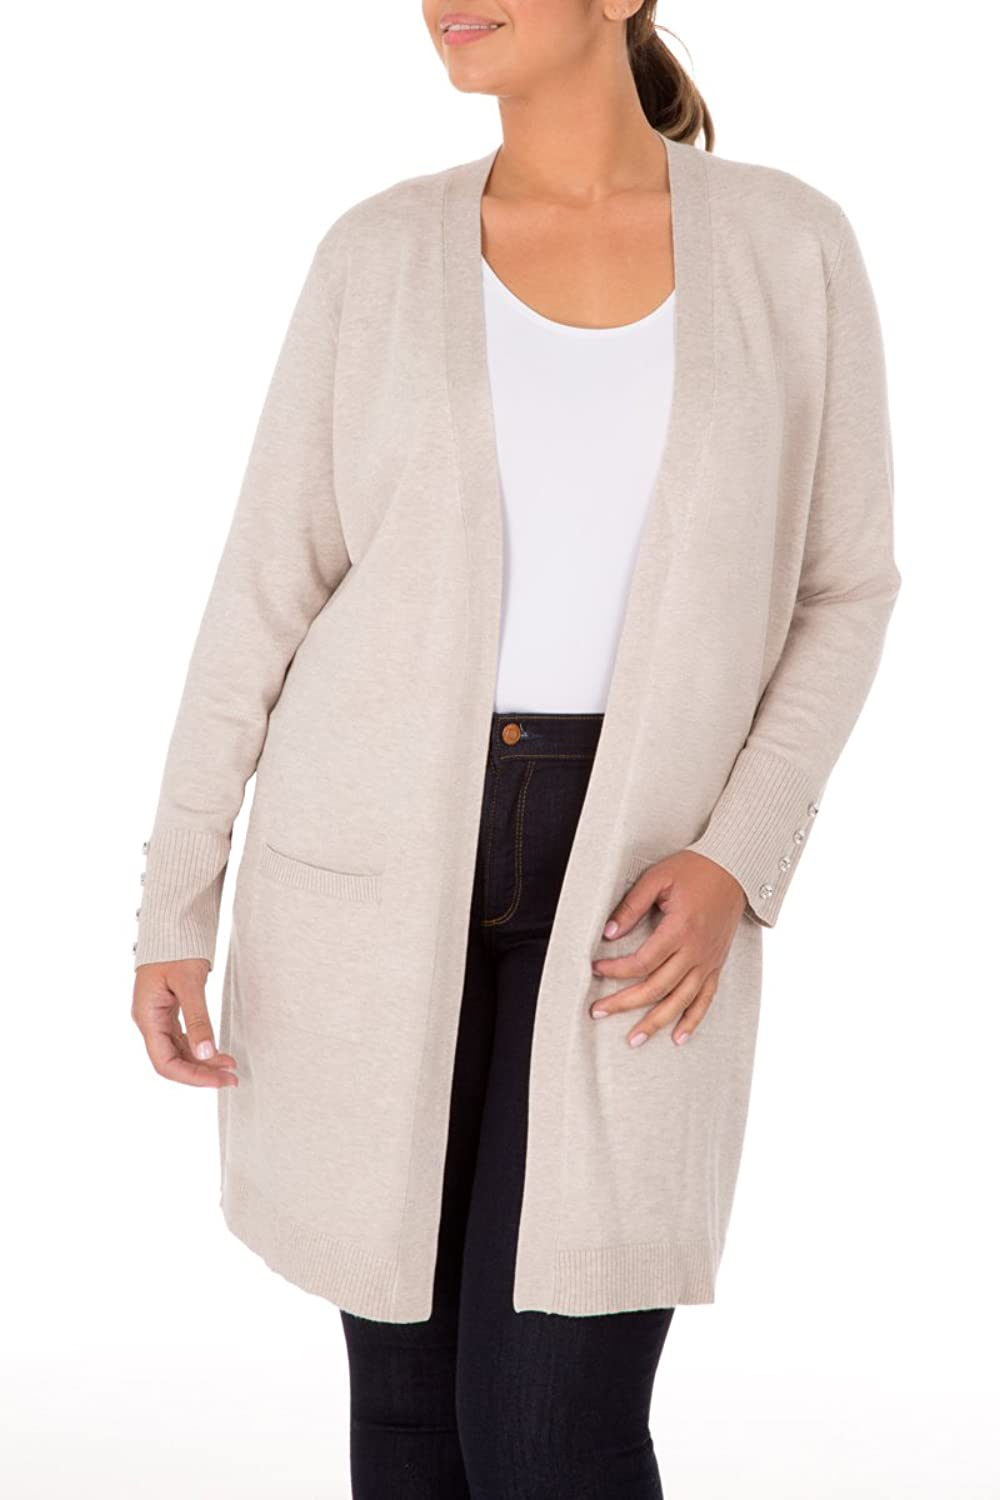 89th&Madison Comfy and Cozy Long Open Front Plus Size Duster Cardigan Sweater